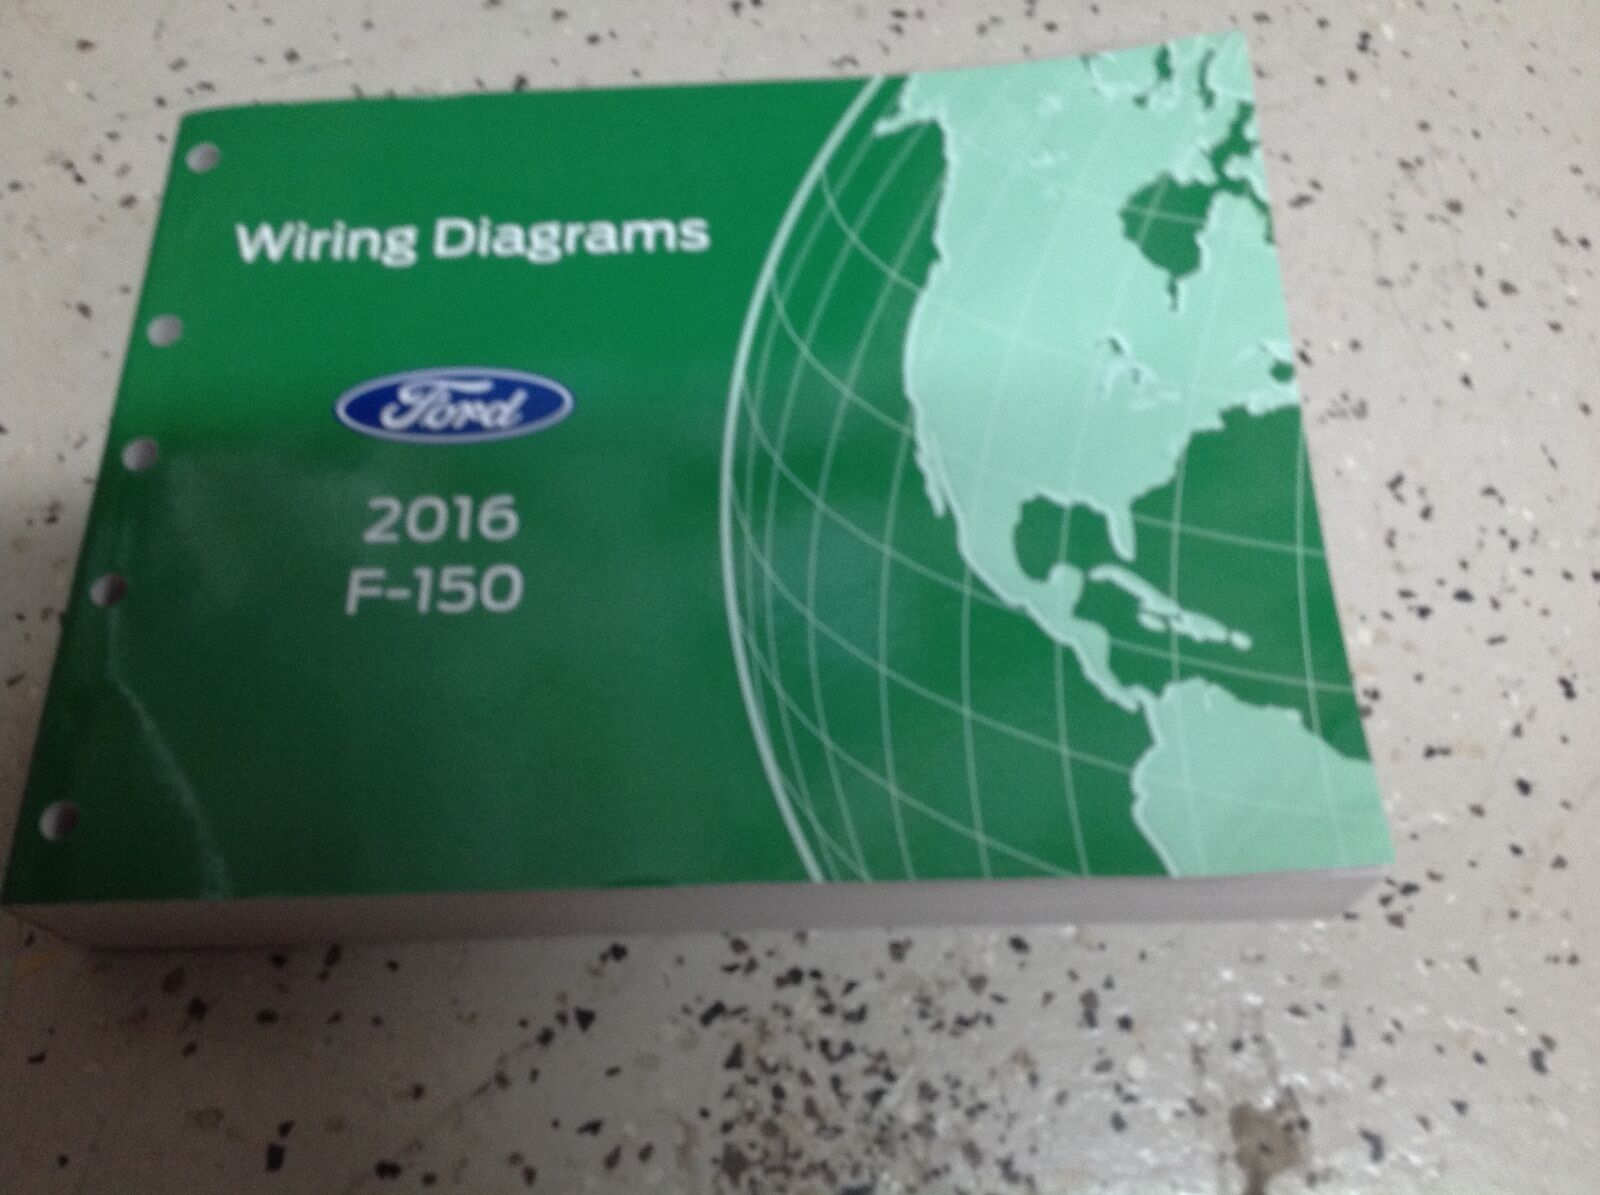 2016 ford f-150 f150 truck wiring diagrams and 50 similar items  57